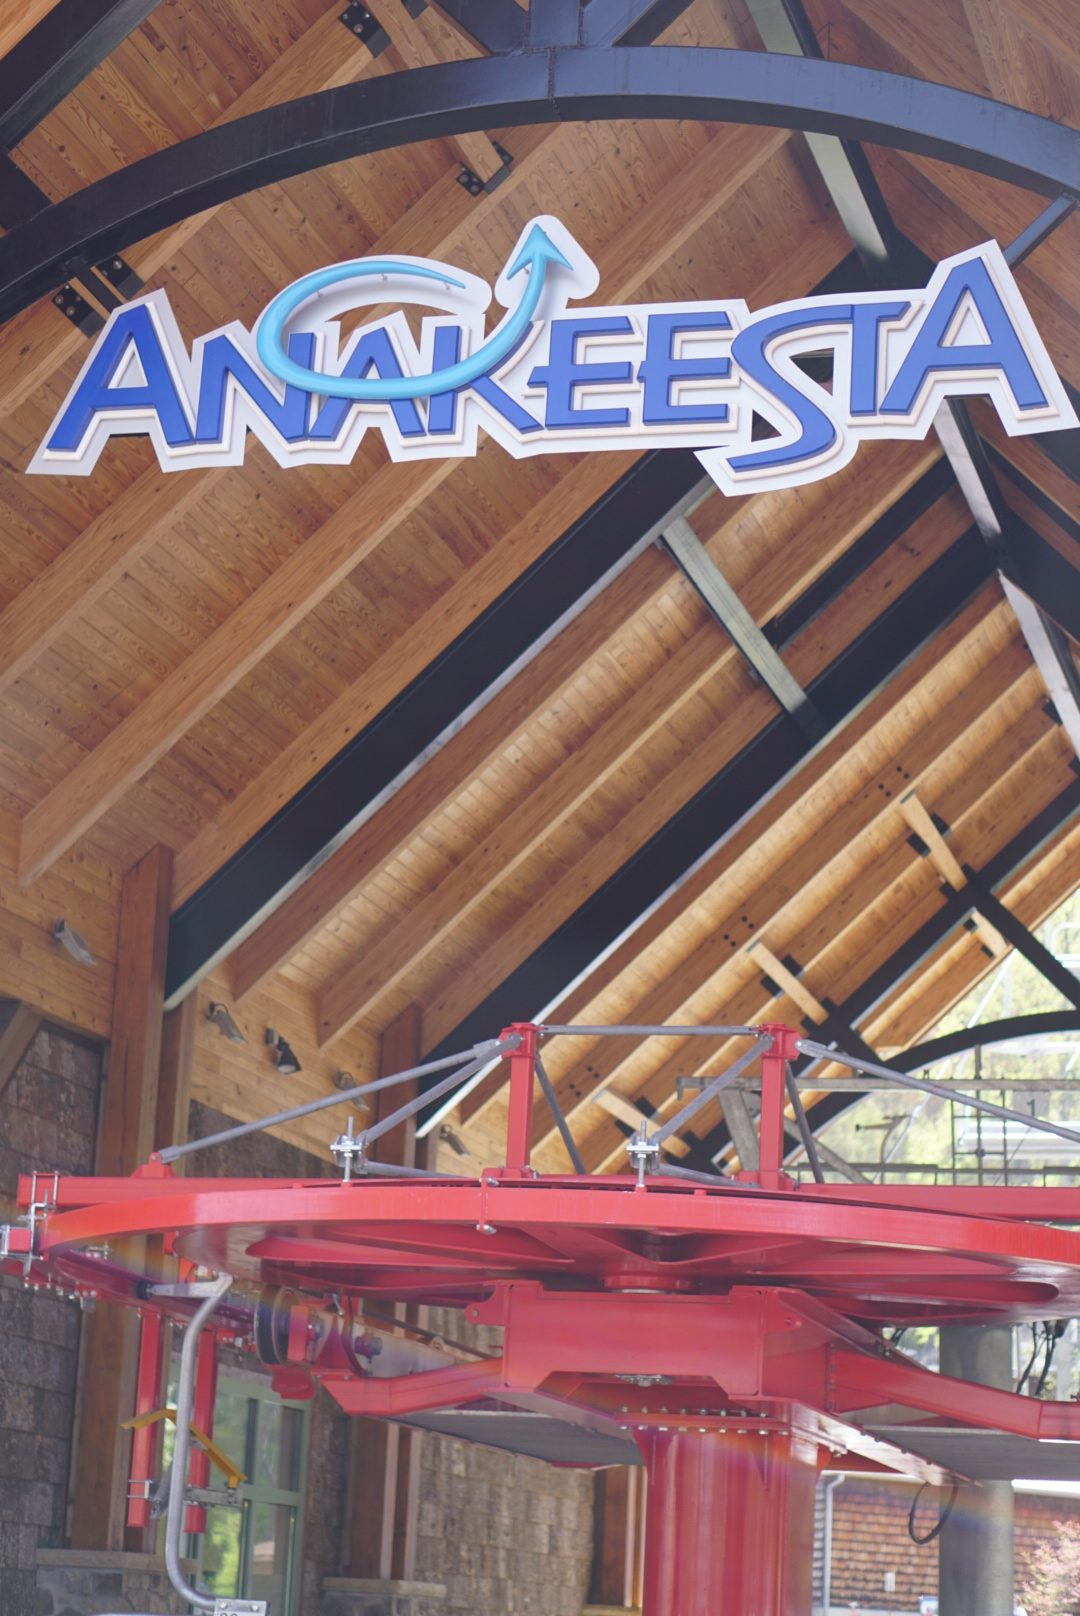 Gatlinburg TN - Visit Tennessee - Anakeesta- Fun Things to Do in Gatlinburg, TN With Kids - Gatlinburg attractions and family friendly places via Misty Nelson travel blogger, family travel blog @frostedevents